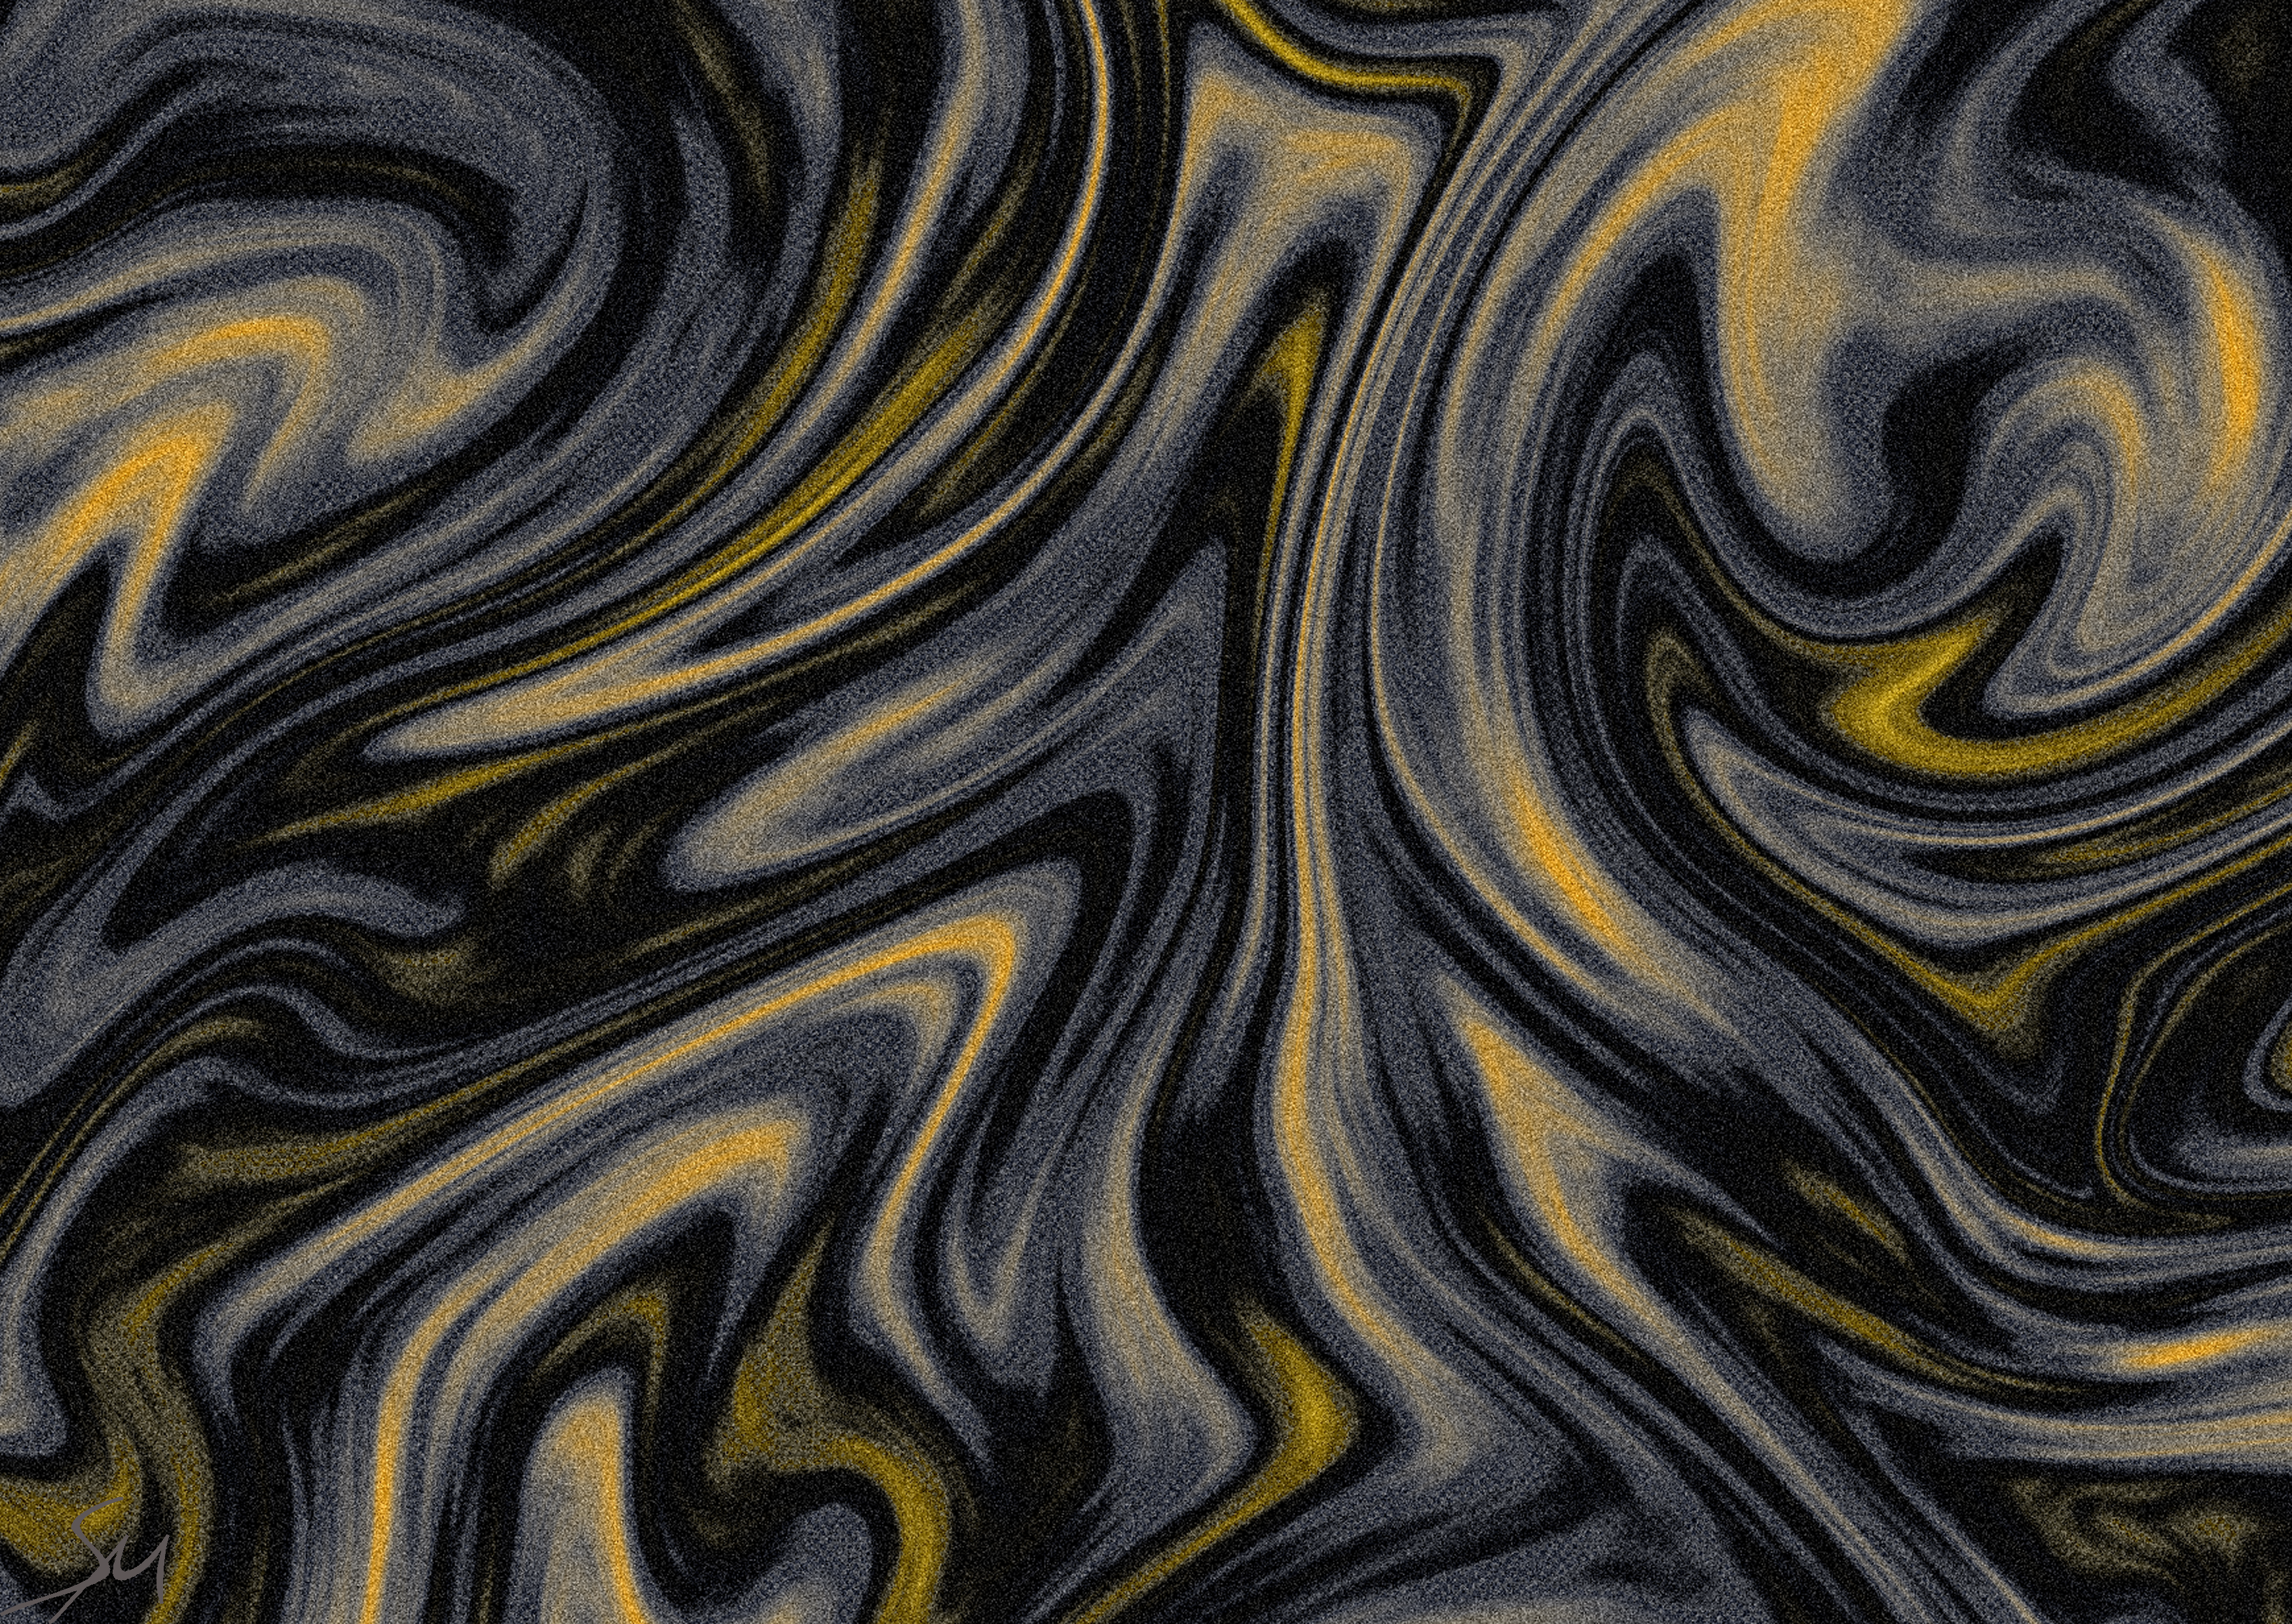 Liquified Clouds 0101